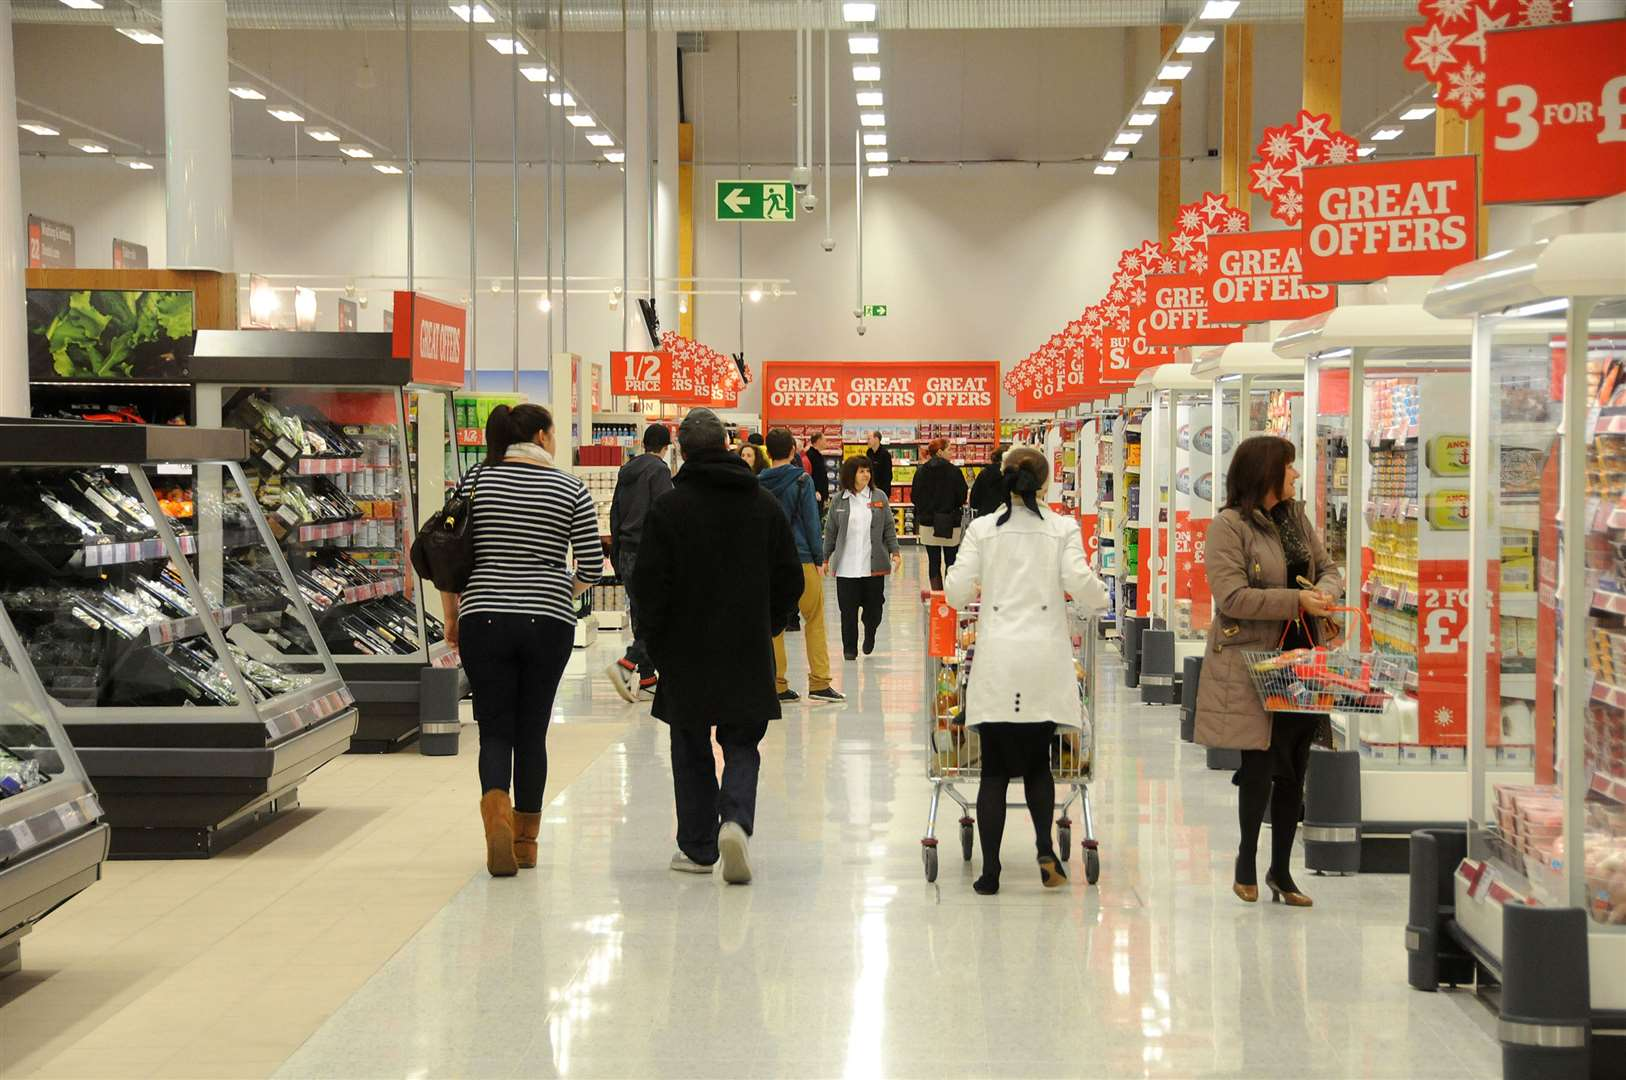 The problem is believed to be affecting stores nationwide